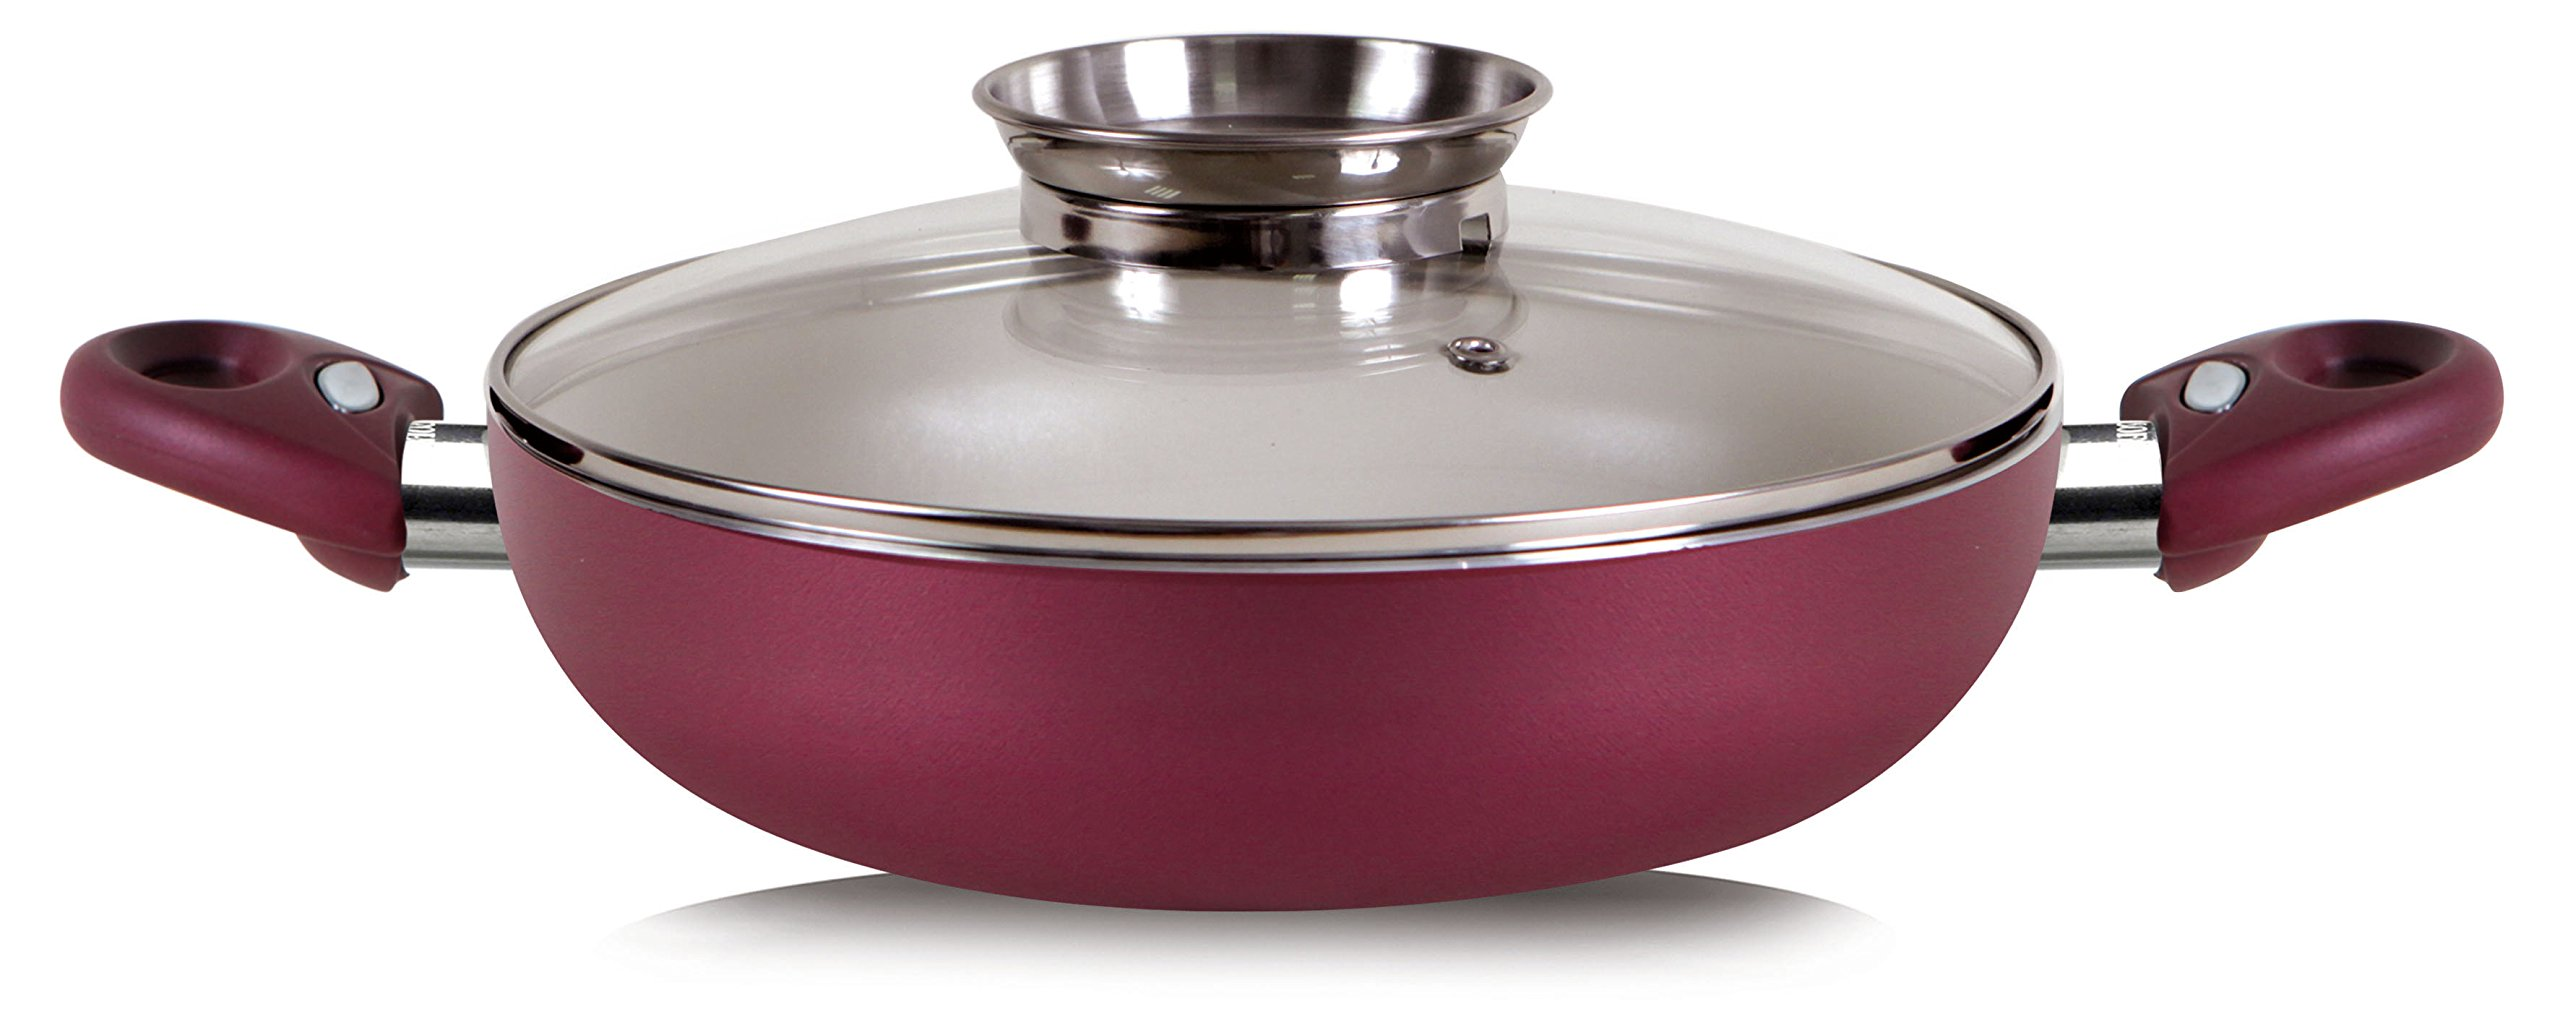 Pensofal Princess Passion Bioceramix Non-Stick Skillet with Aroma Lid, 11-Inch  - 07PEN9712